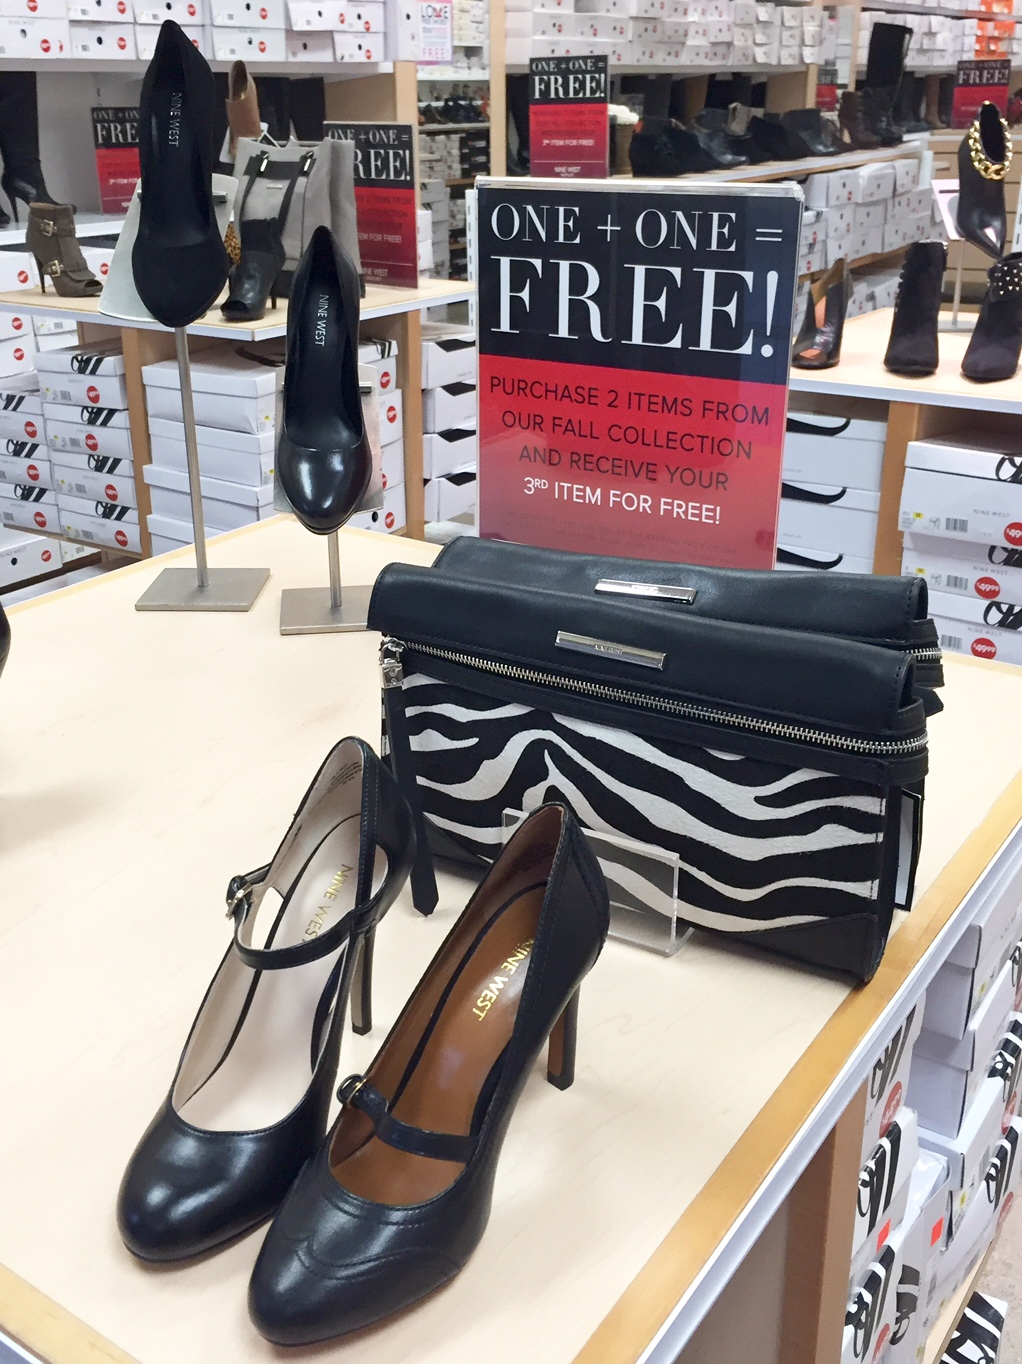 Nine West Shoe Studio Outlet Clearance Sale